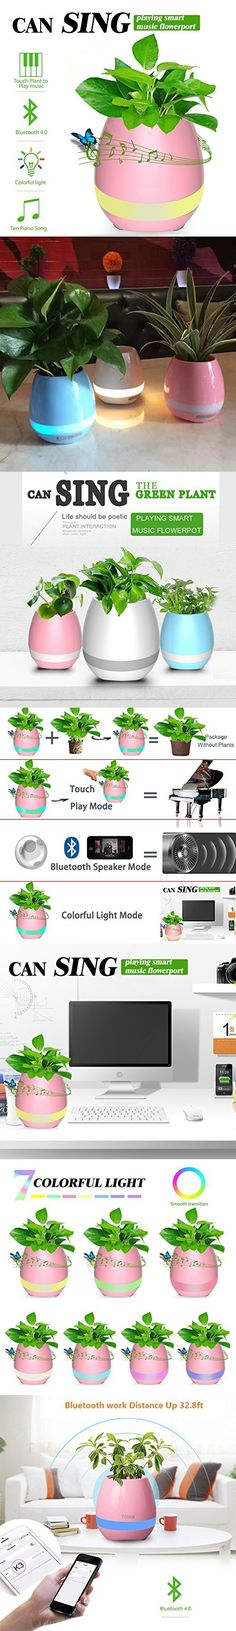 Music Flowerpot,Touch Plant Piano Music Playing Flowerpot Smart Multi color LED Light Round Plant Pots and Bluetooth Wireless Speaker for Office Home Decor-QINUKER (whitout Plants)Pink